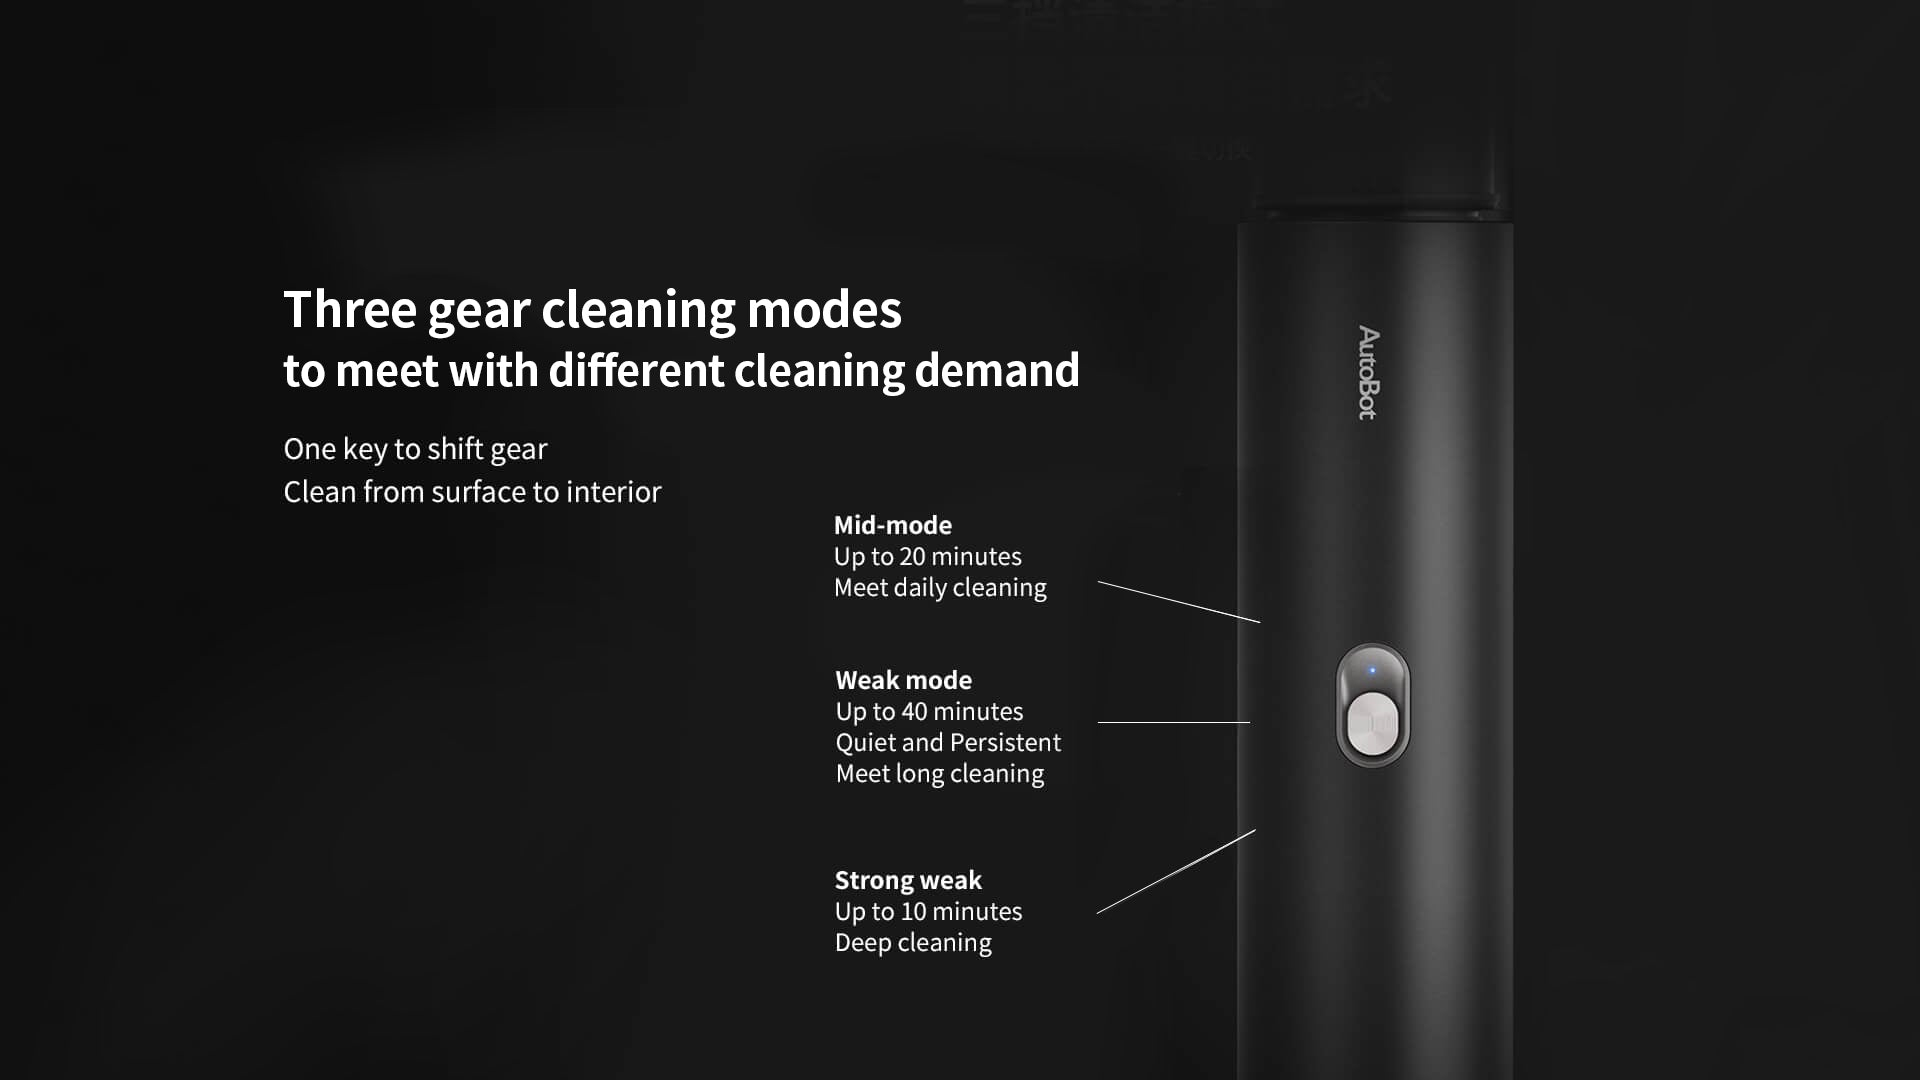 Three gear cleaning modes to meet with different cleaning demand